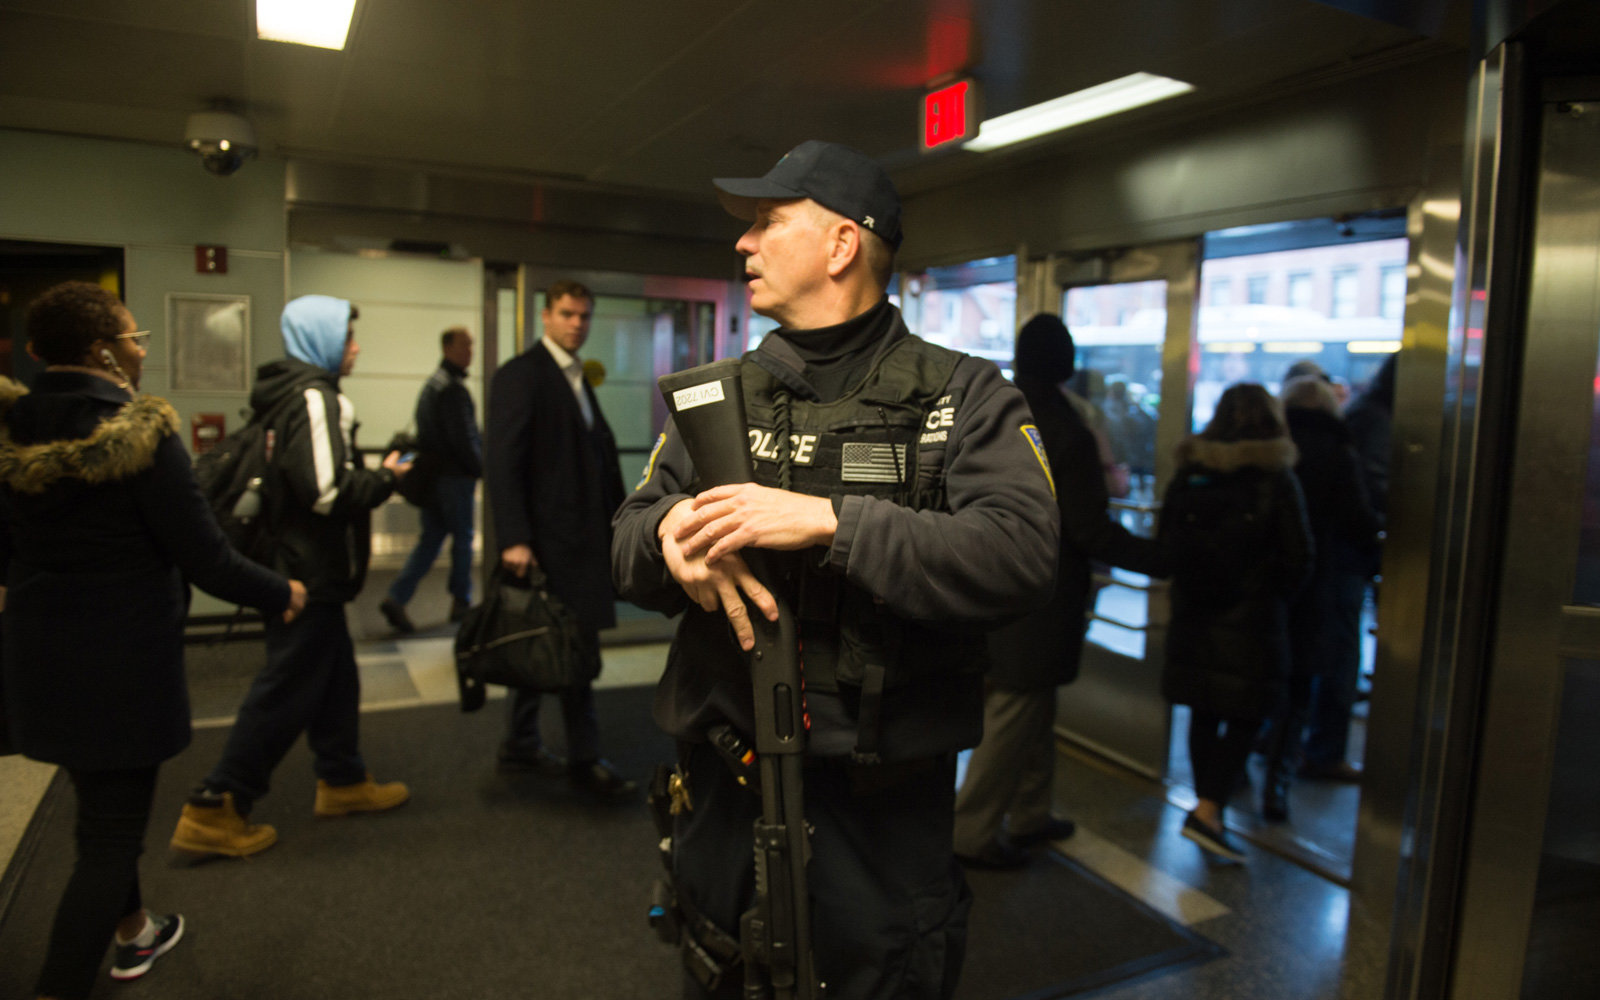 Reports of Explosion in New York City's Port Authority